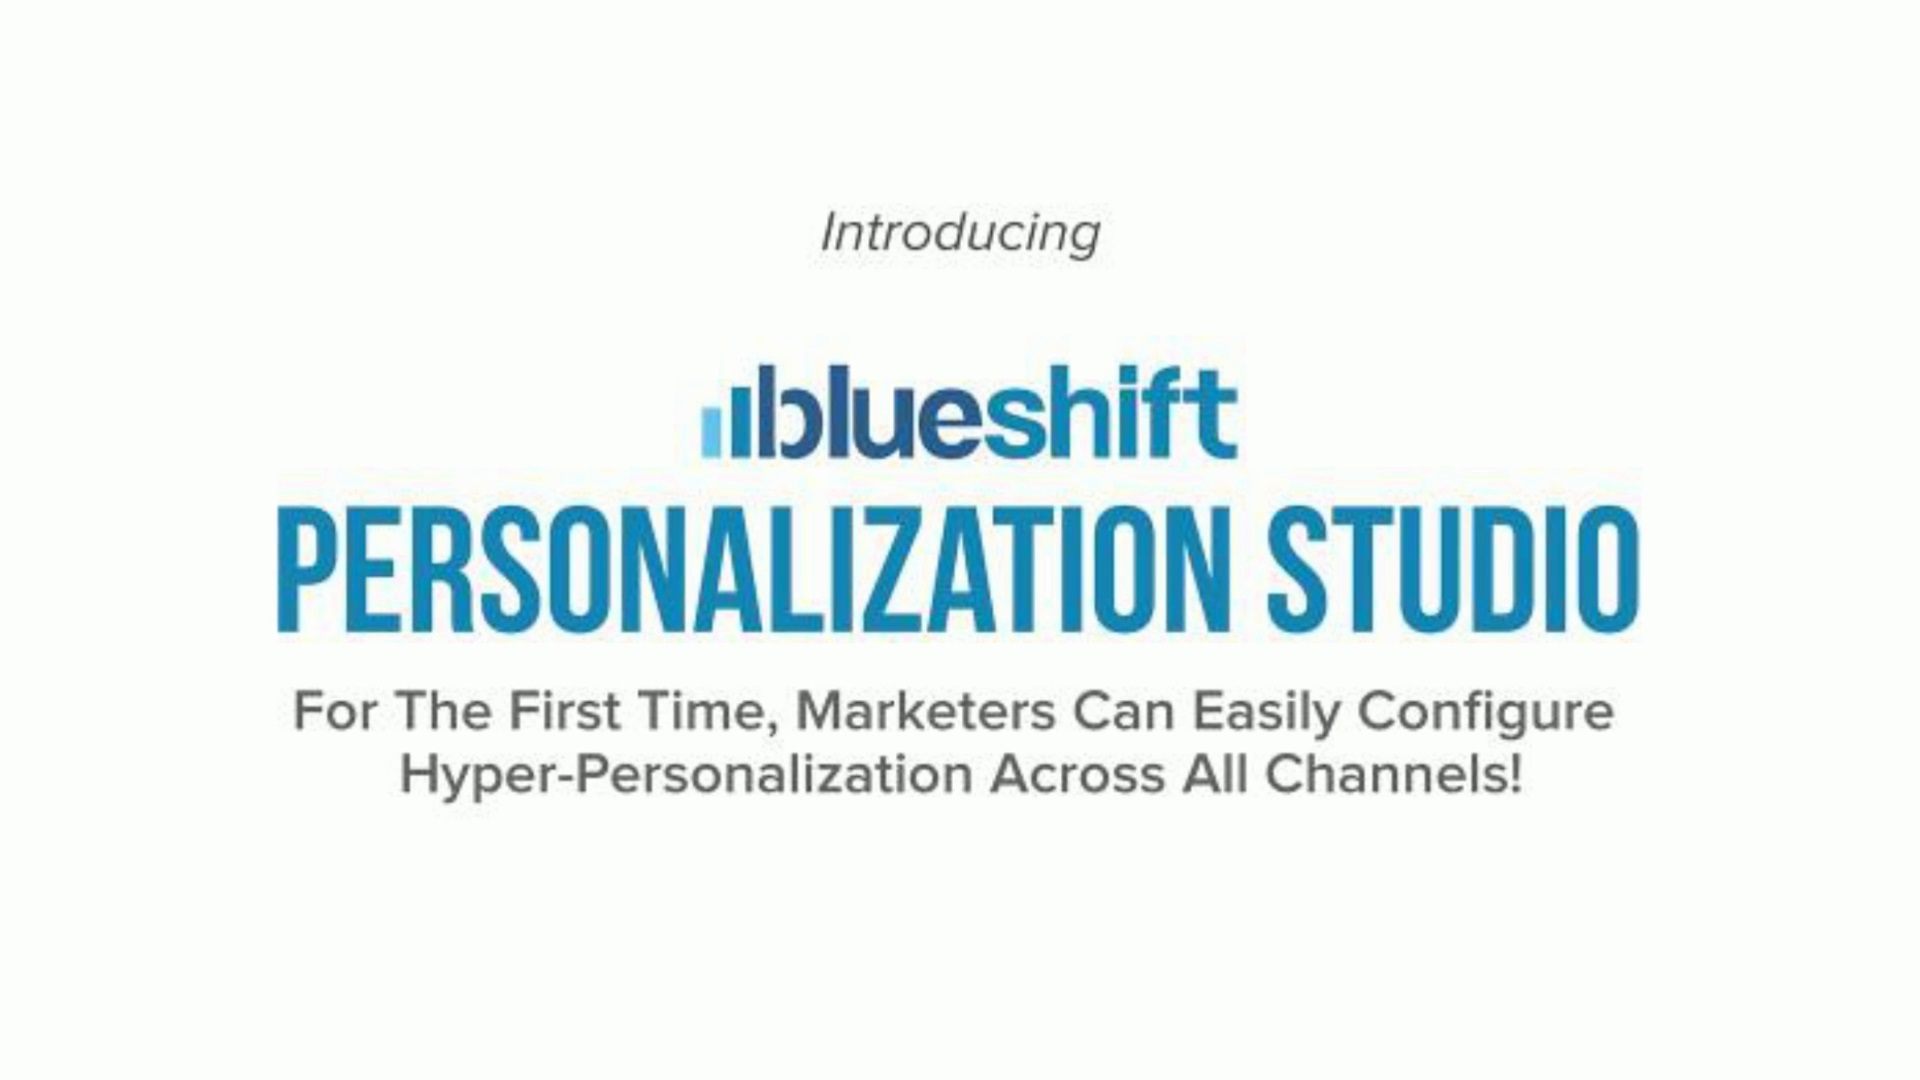 With Blueshift's Personalization Studio, for the first time, marketers can easily configure hyper-personalization across all marketing channels! https://getblueshift.com/